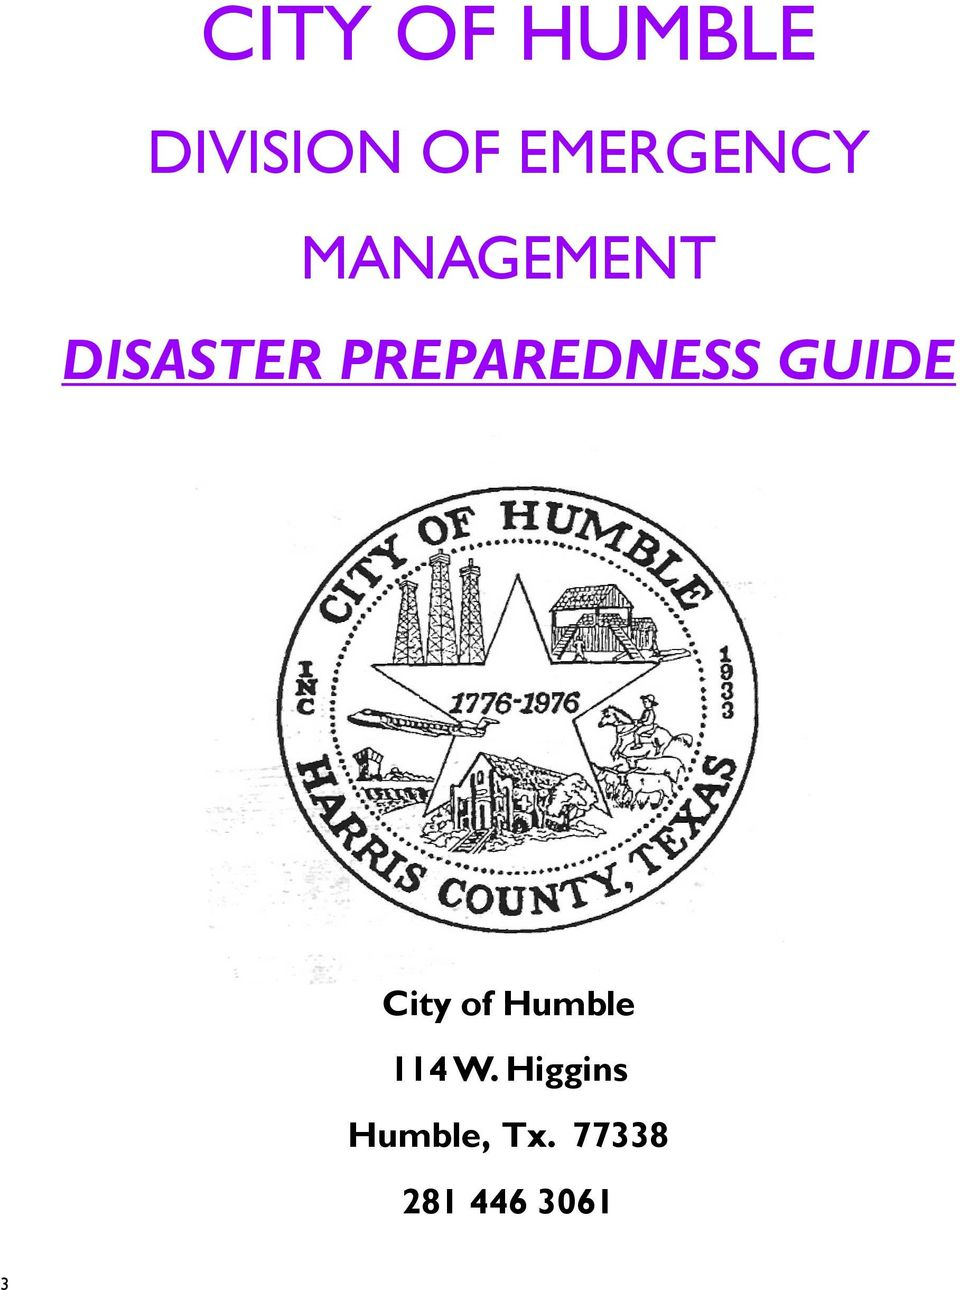 PREPAREDNESS GUIDE City of Humble